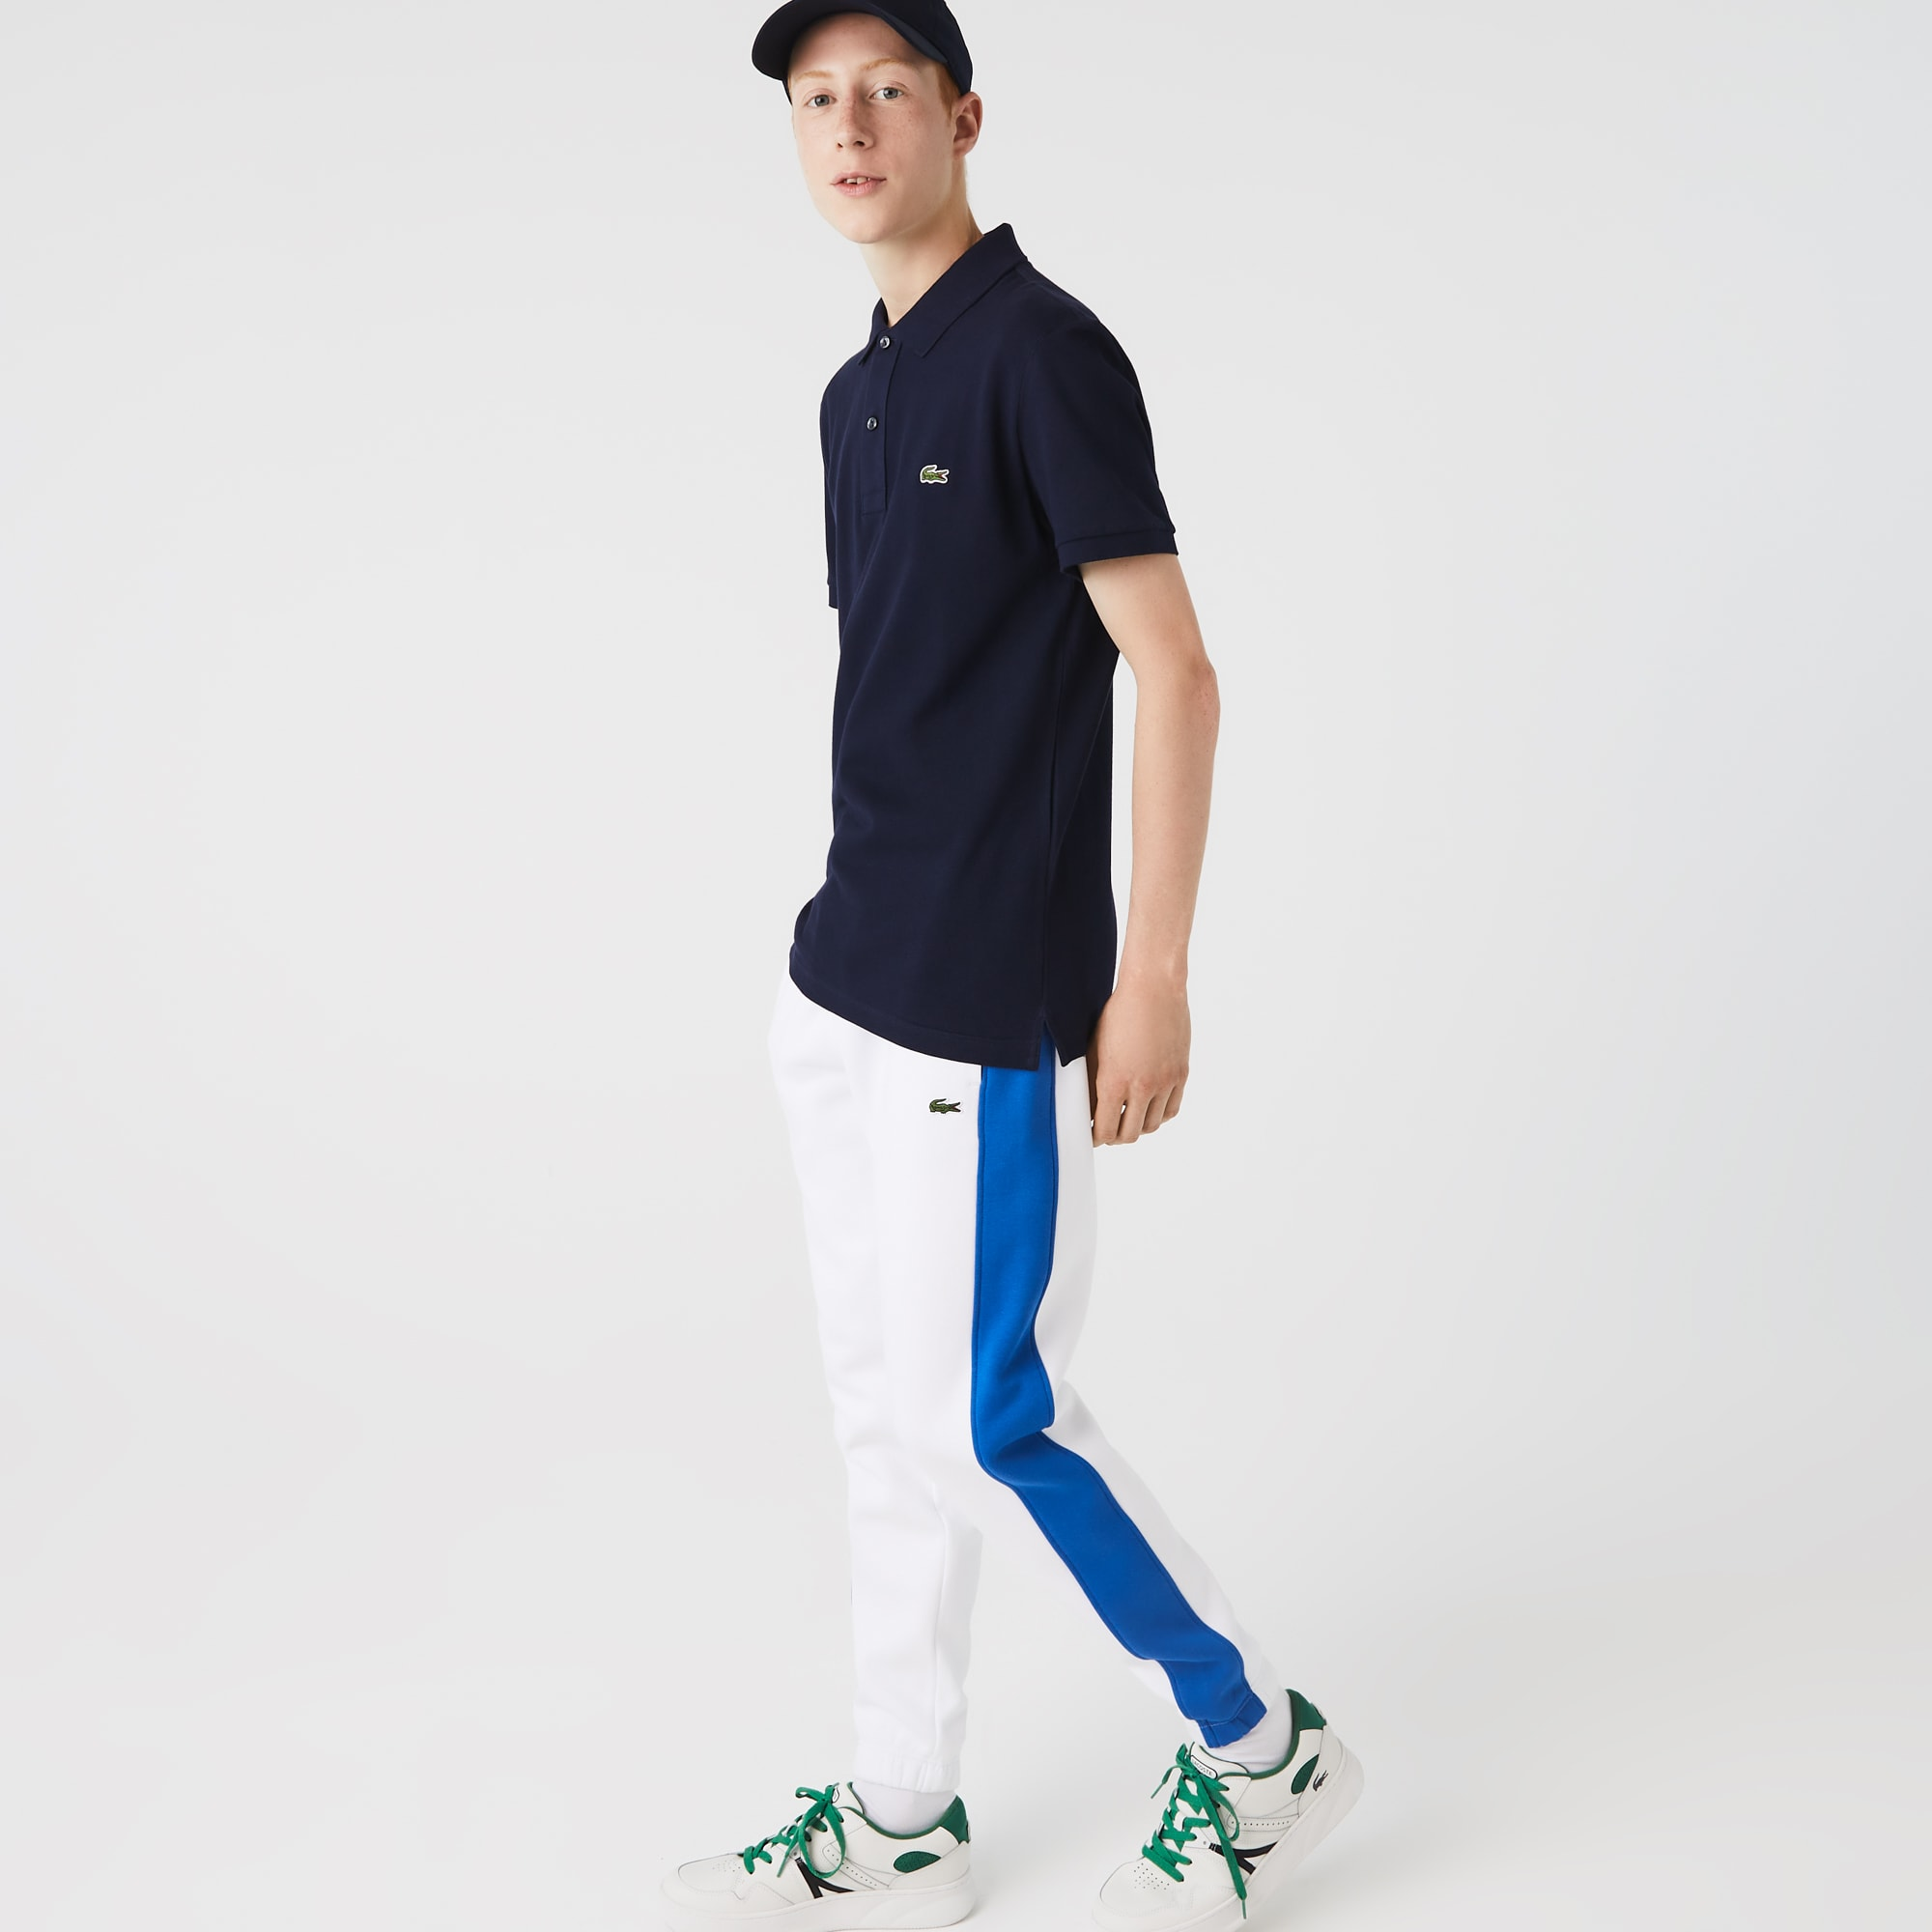 b600edf01 Men's Slim fit Lacoste Polo Shirt in petit piqué | LACOSTE